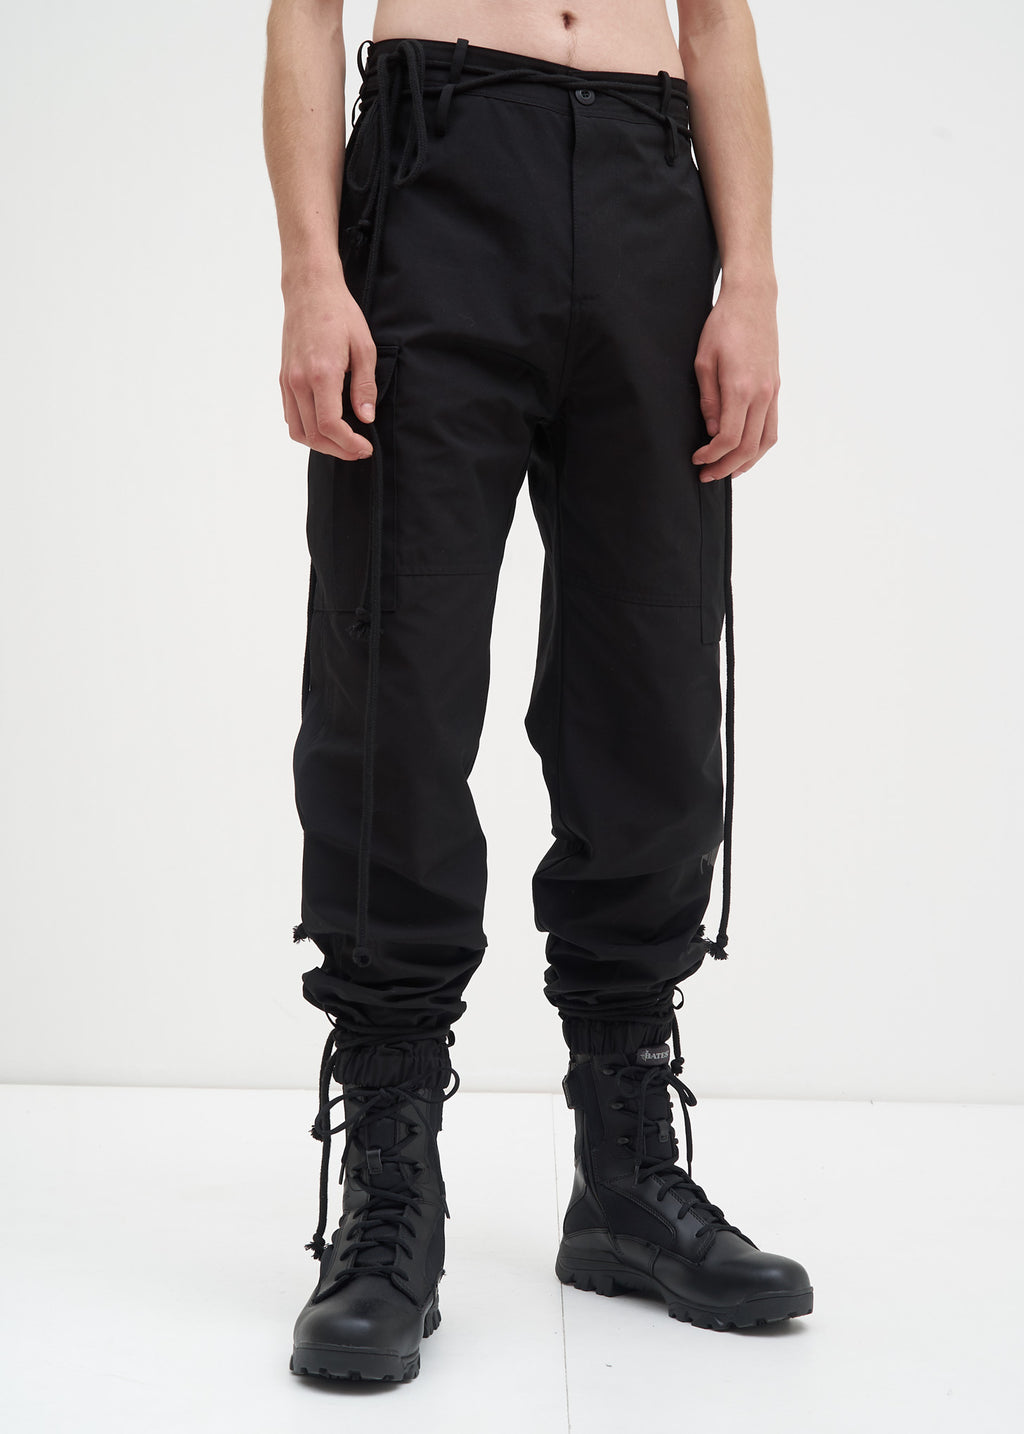 Black Fatal Cargo Pants